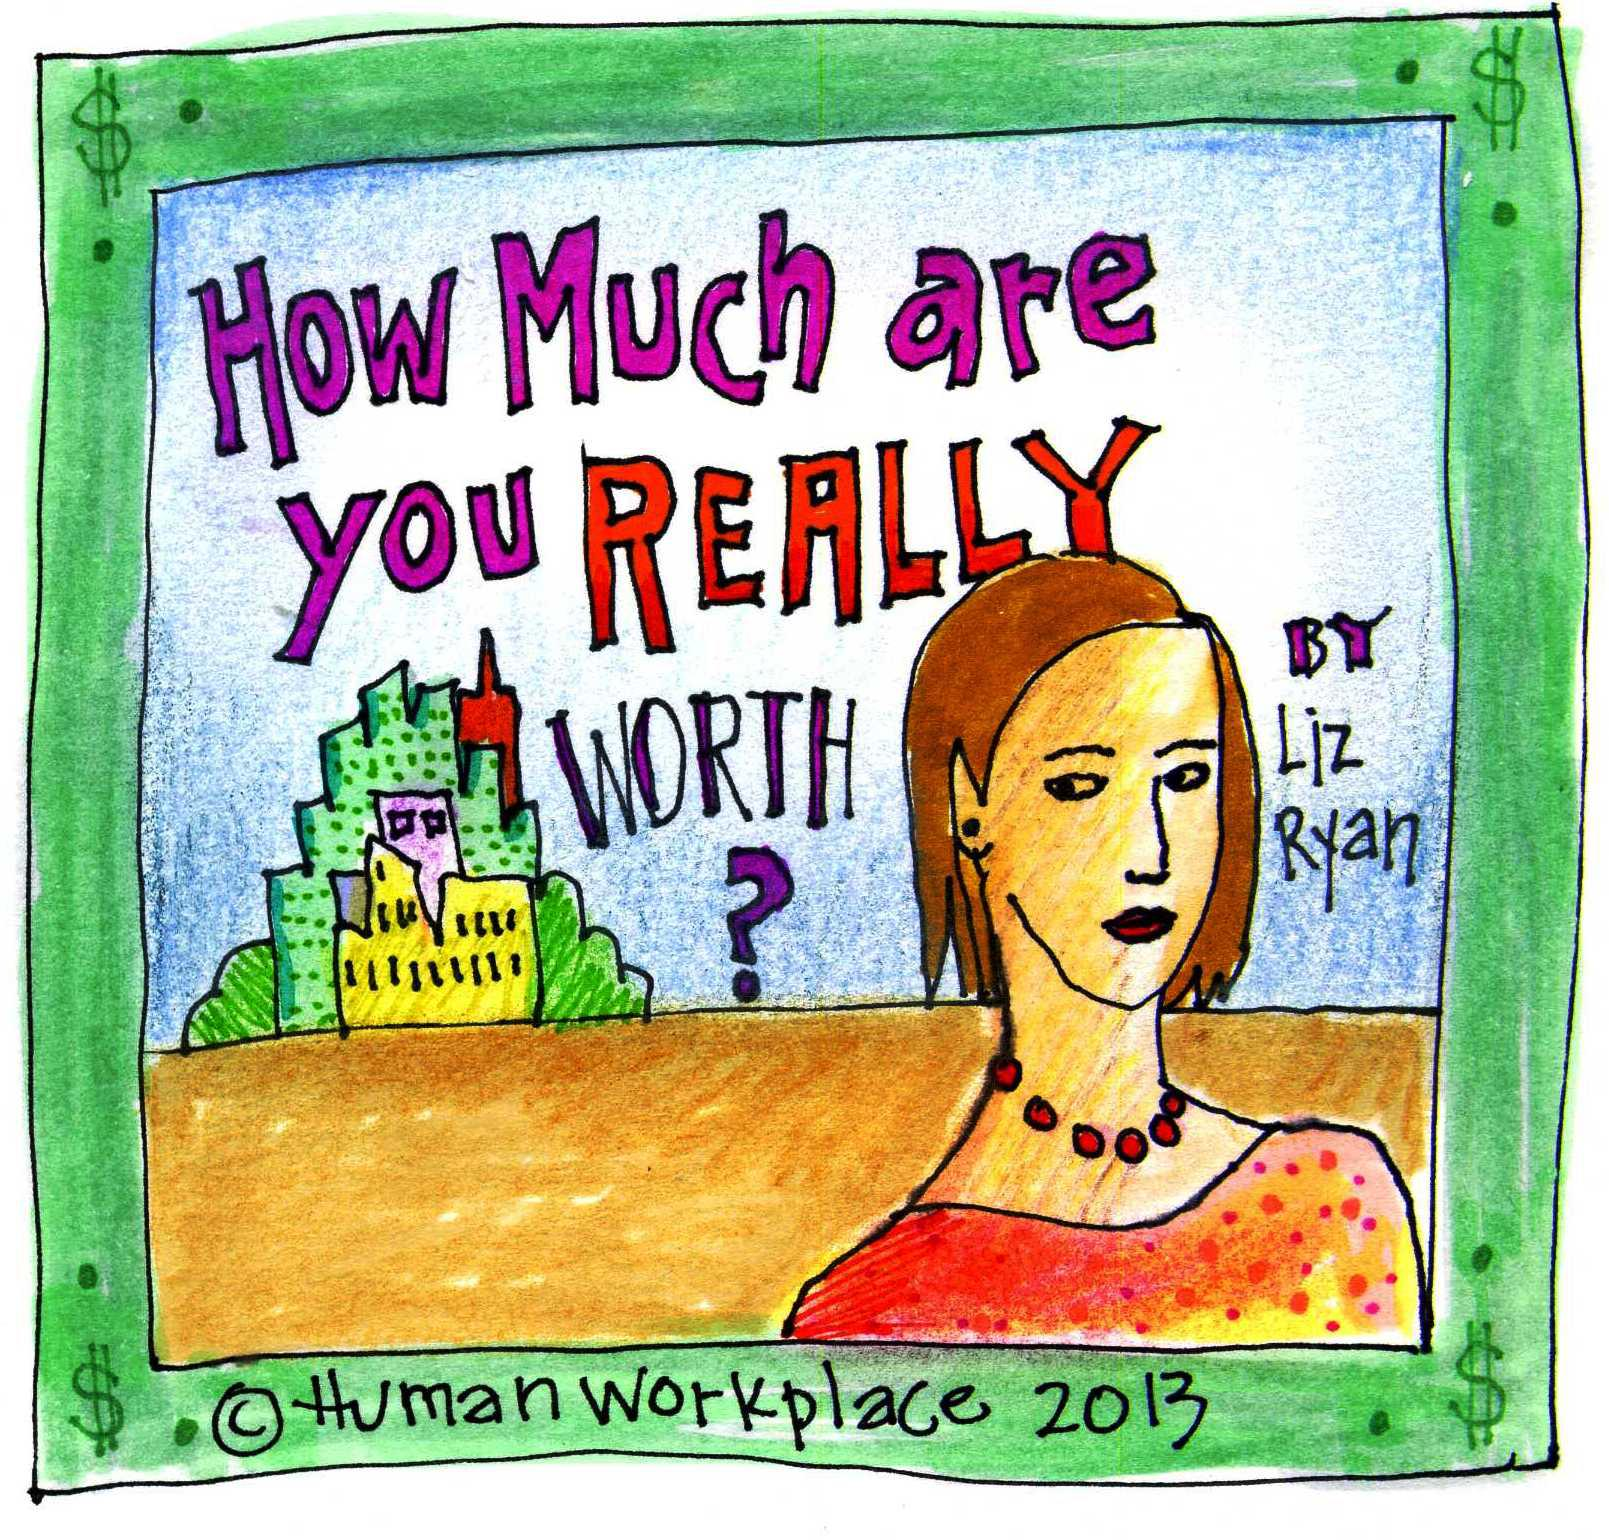 how much are you really worth (3)